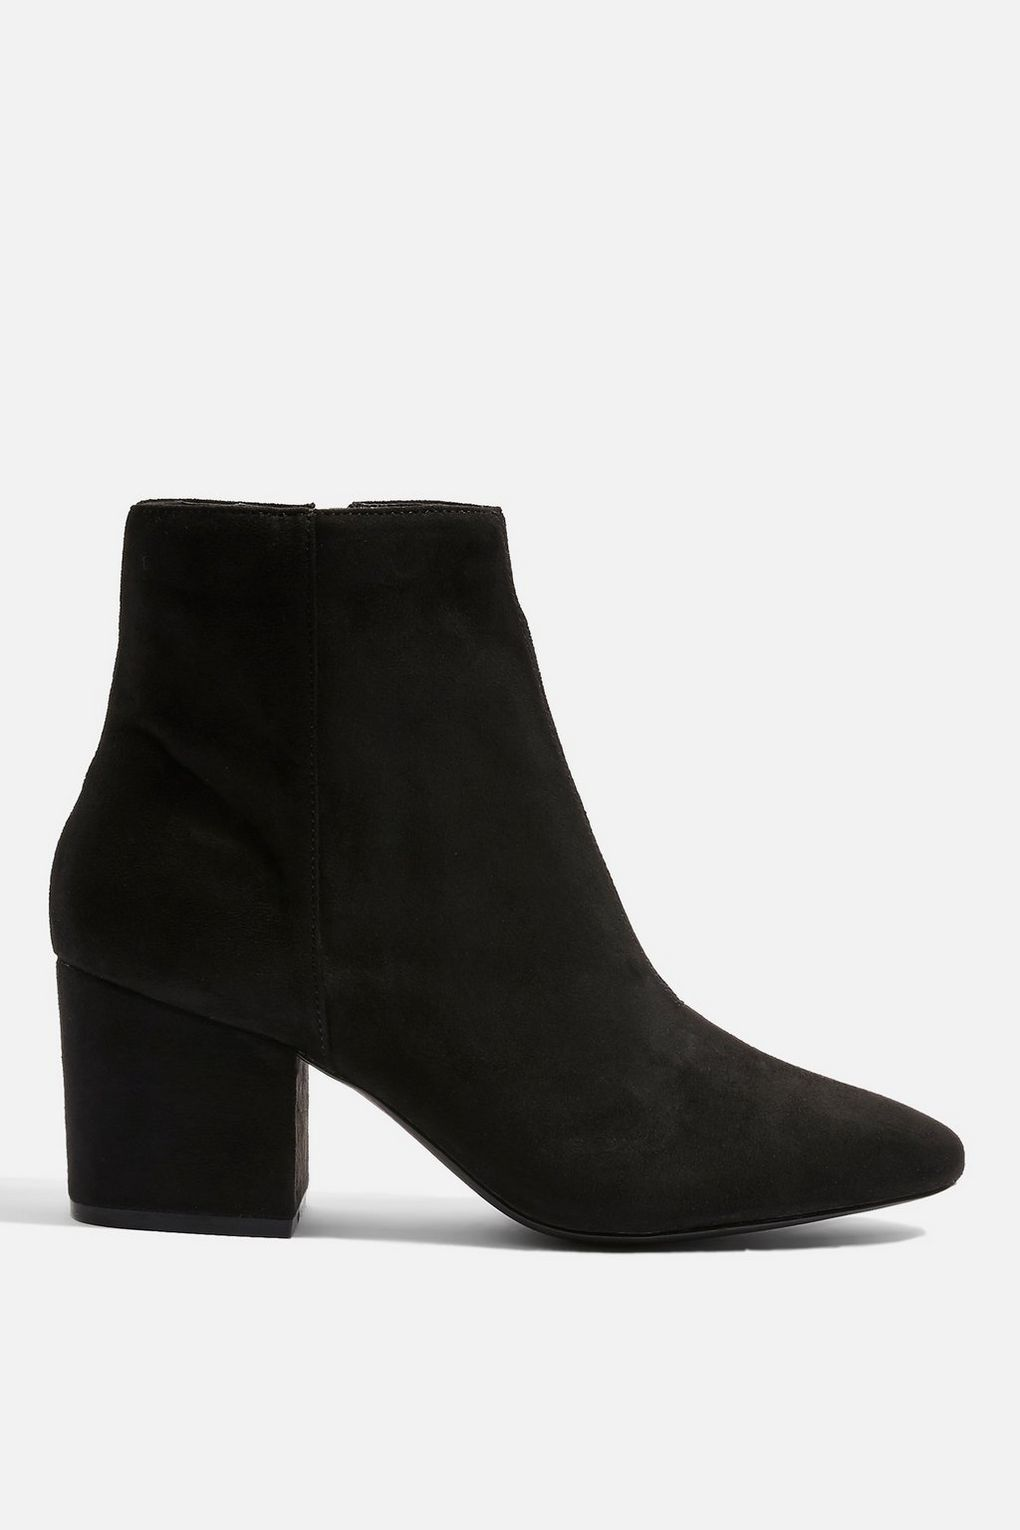 BRANDY Micro Ankle Boots   Boots, Black